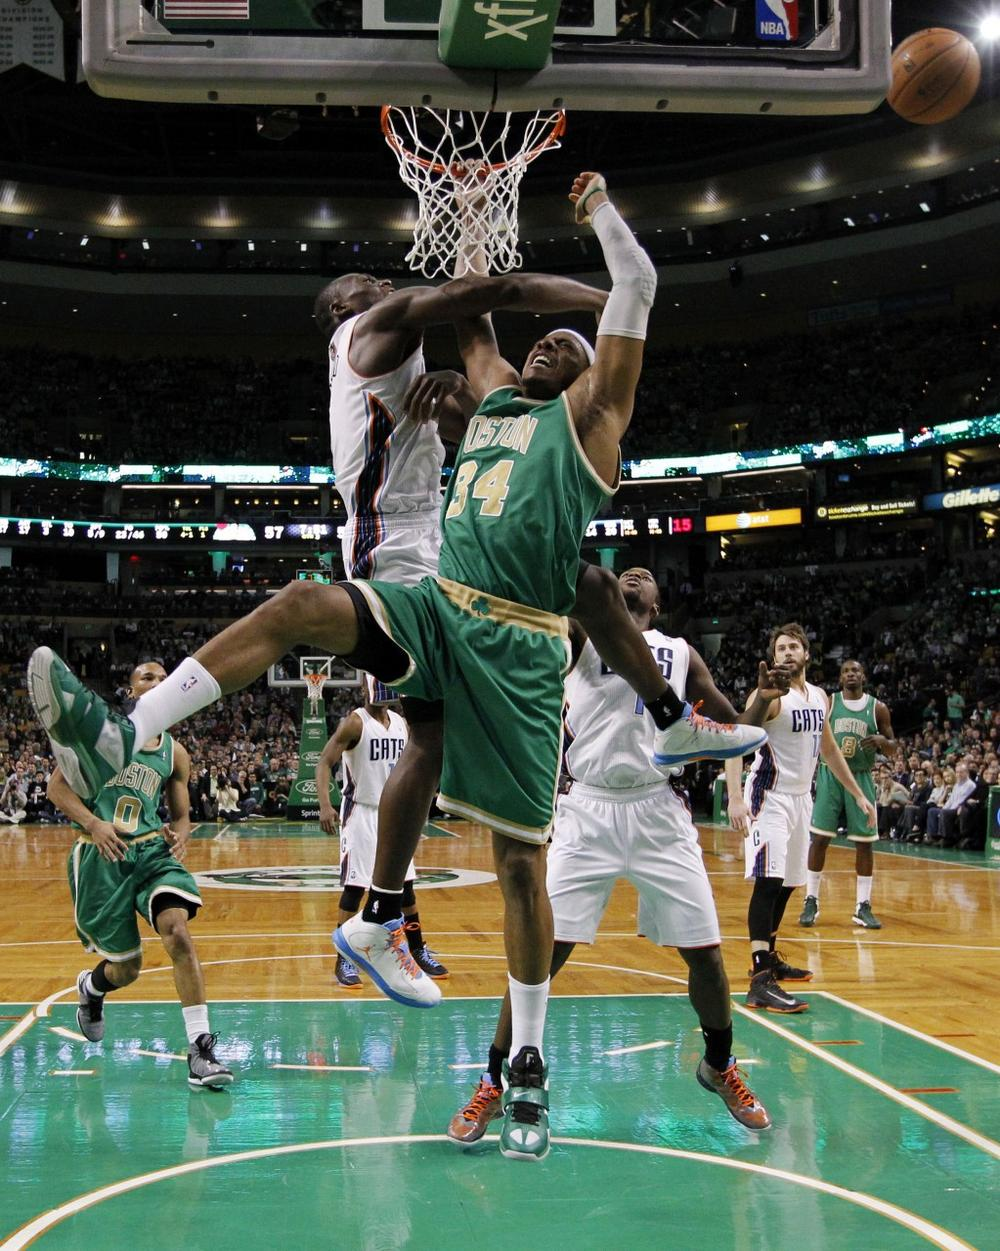 Charlotte Bobcats' Bismack Biyombo (0) blocks a shot byPaul Pierce (34) in Boston, Saturday, March 16, 2013. The Celtics won 105-88. (Michael Dwyer/AP)